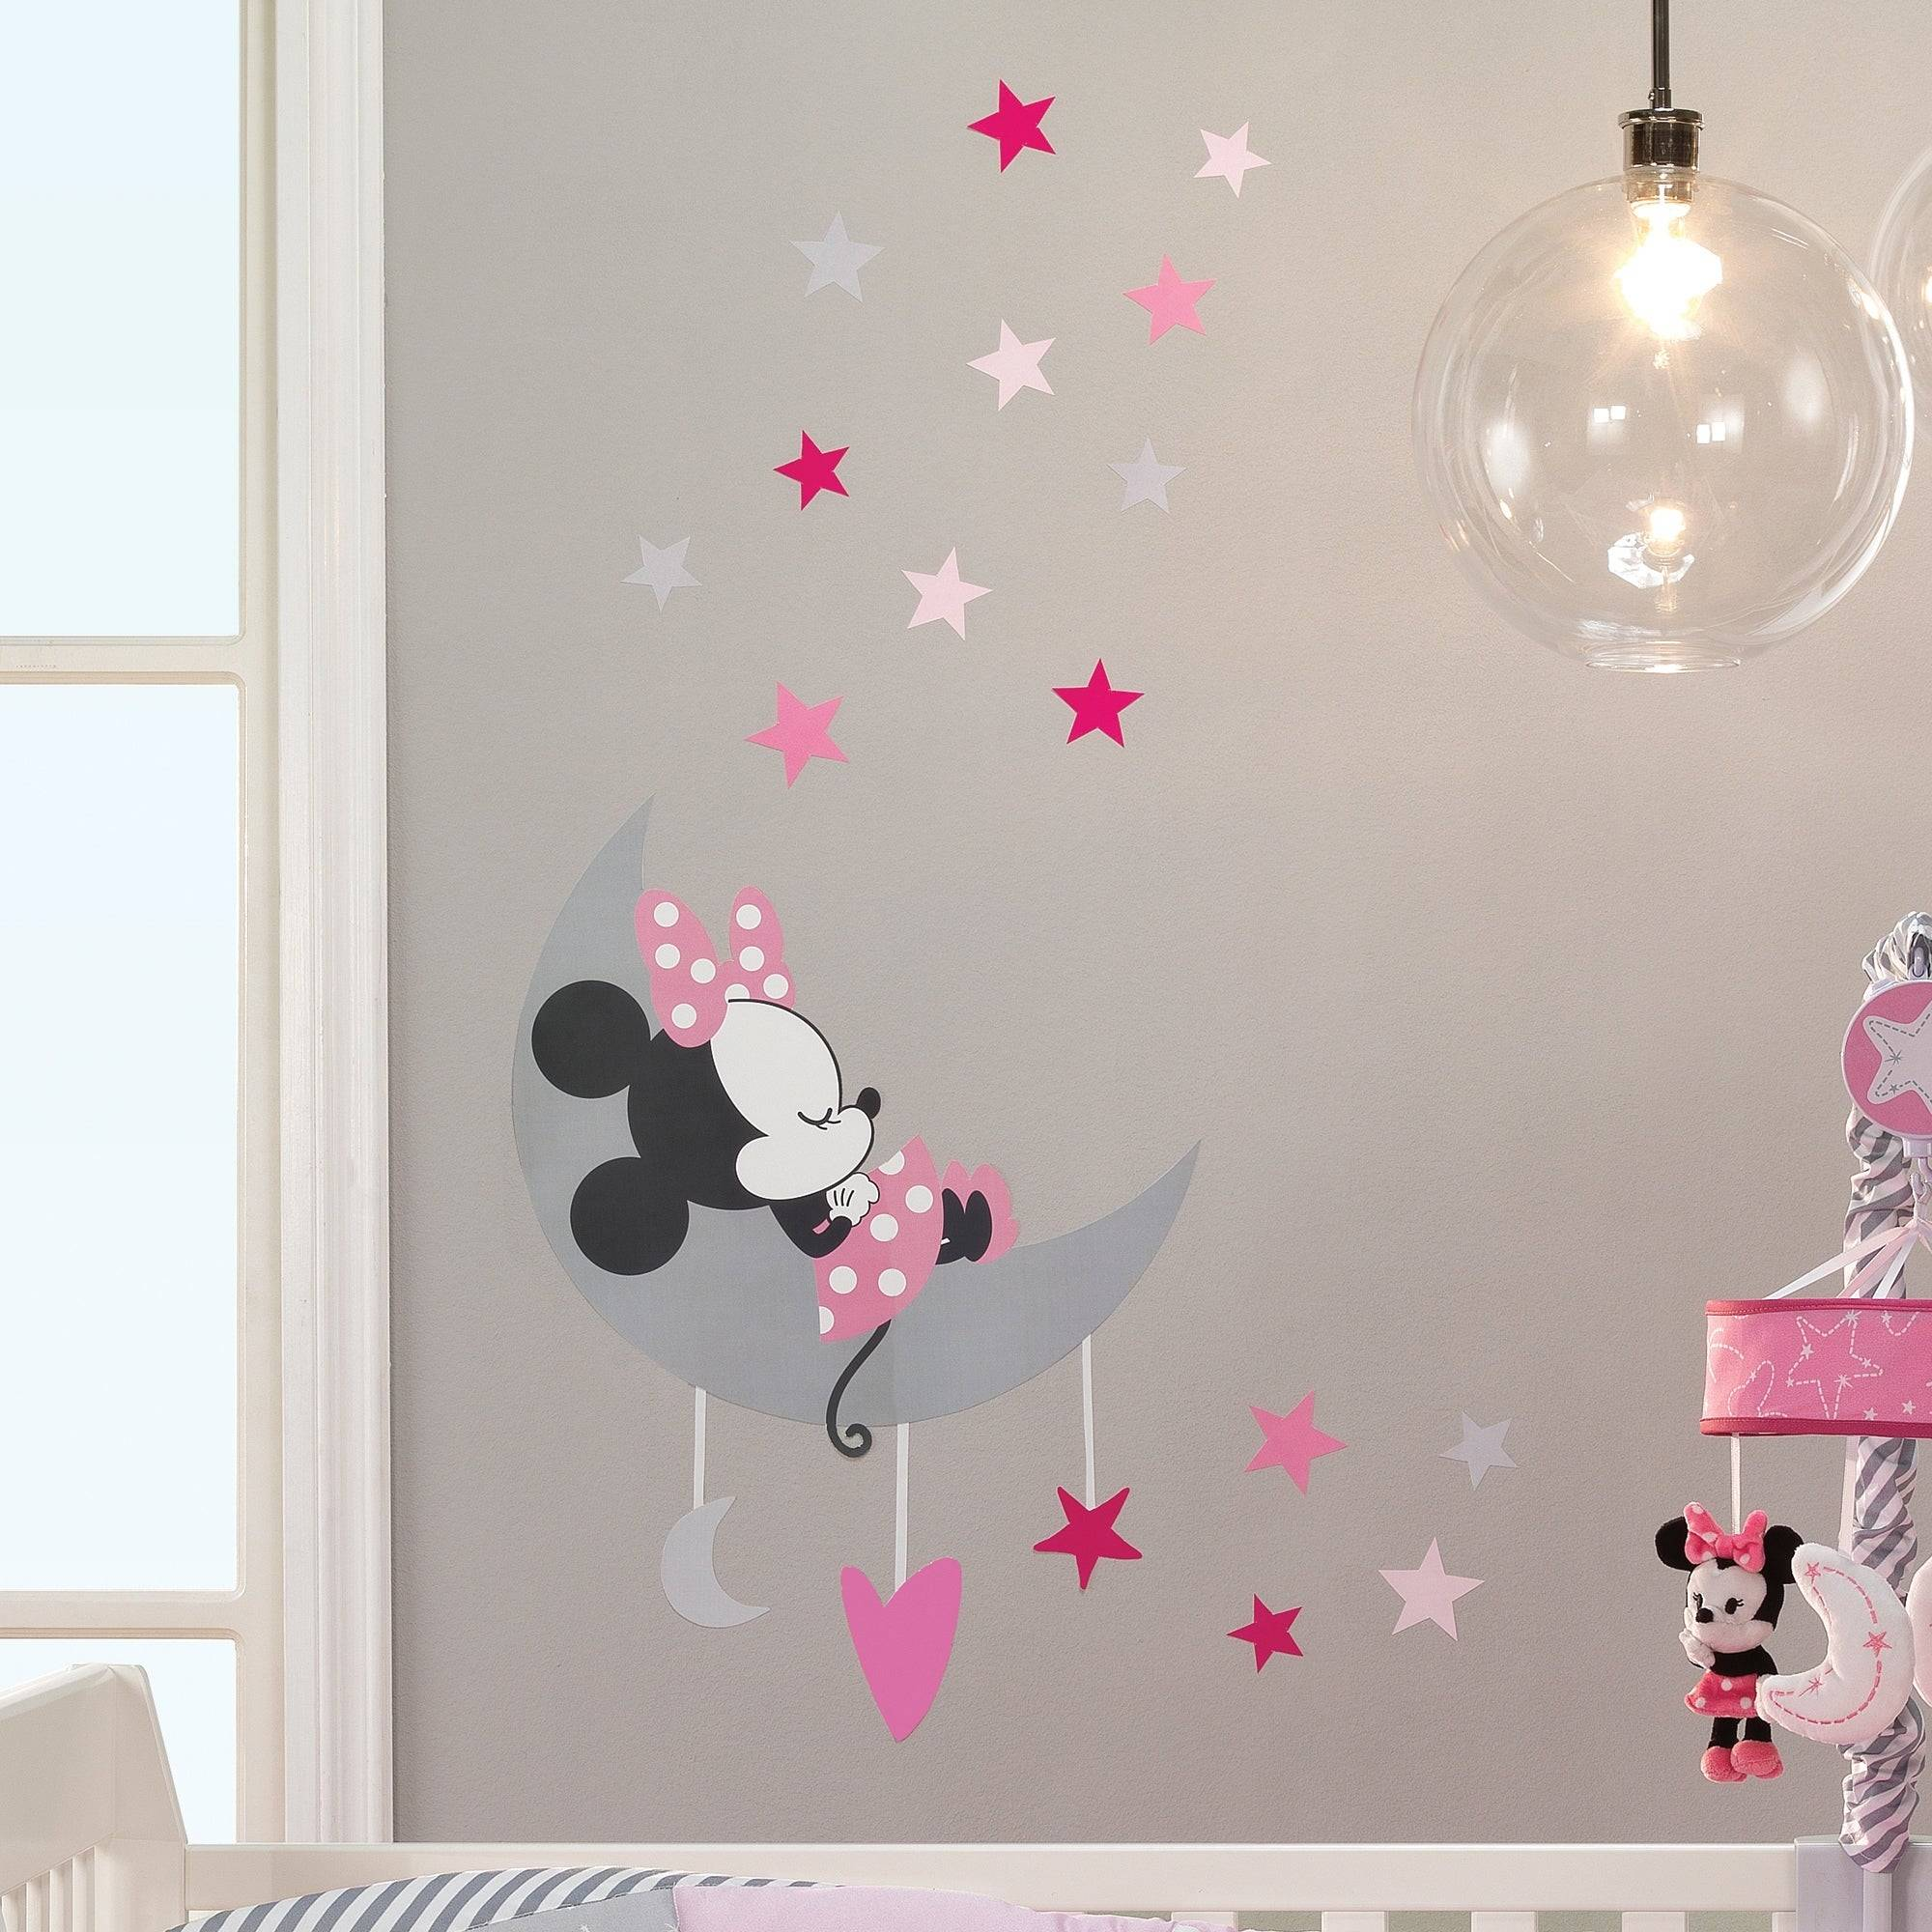 Disney Baby Minnie Mouse Pink Gray Celestial Wall Decals by Lambs & Ivy